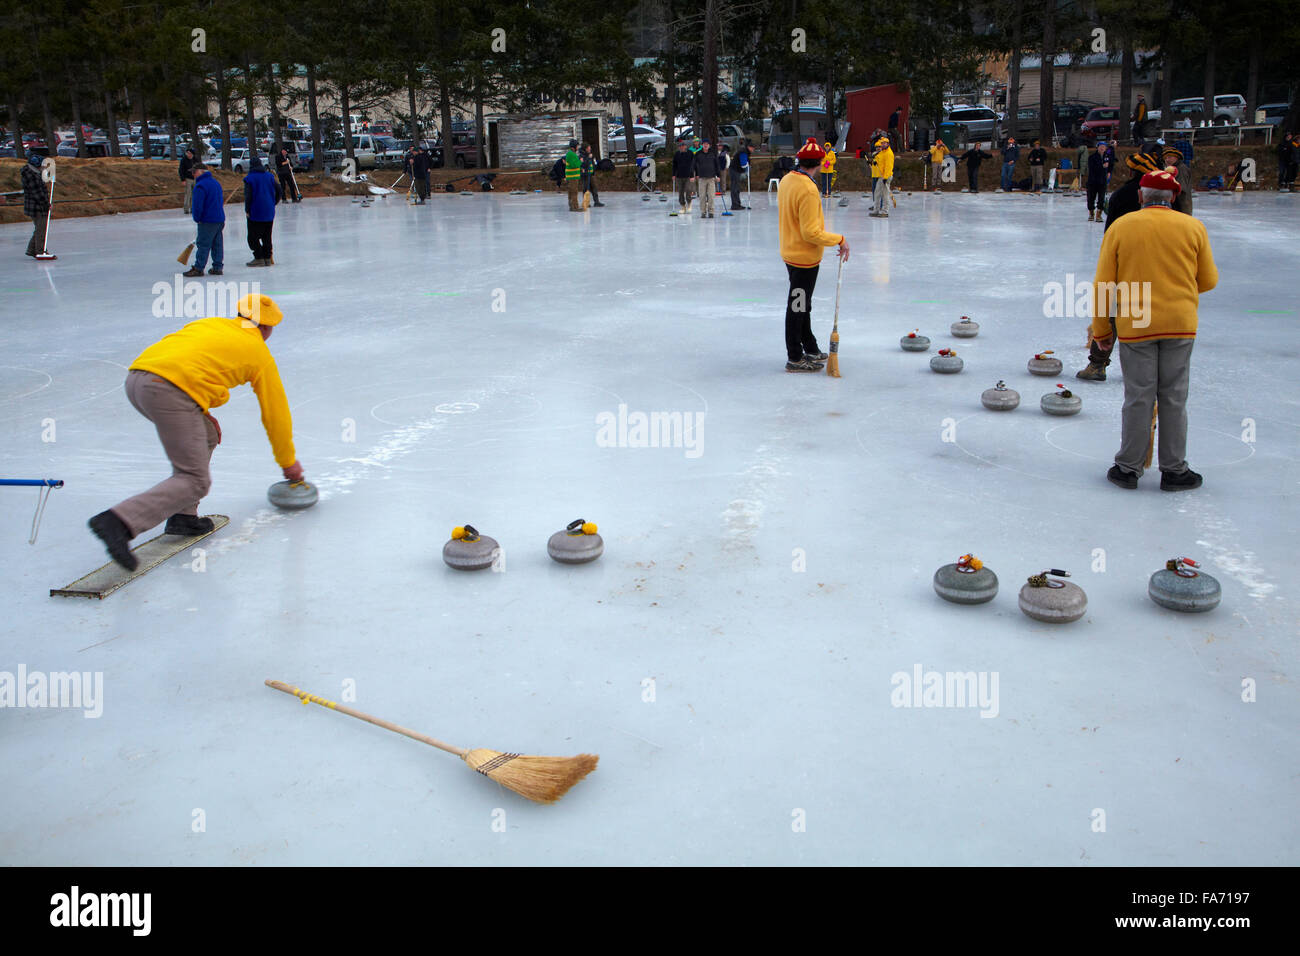 Curling Bonspiel, Naseby, Maniototo, Central Otago, South Island, New Zealand - Stock Image